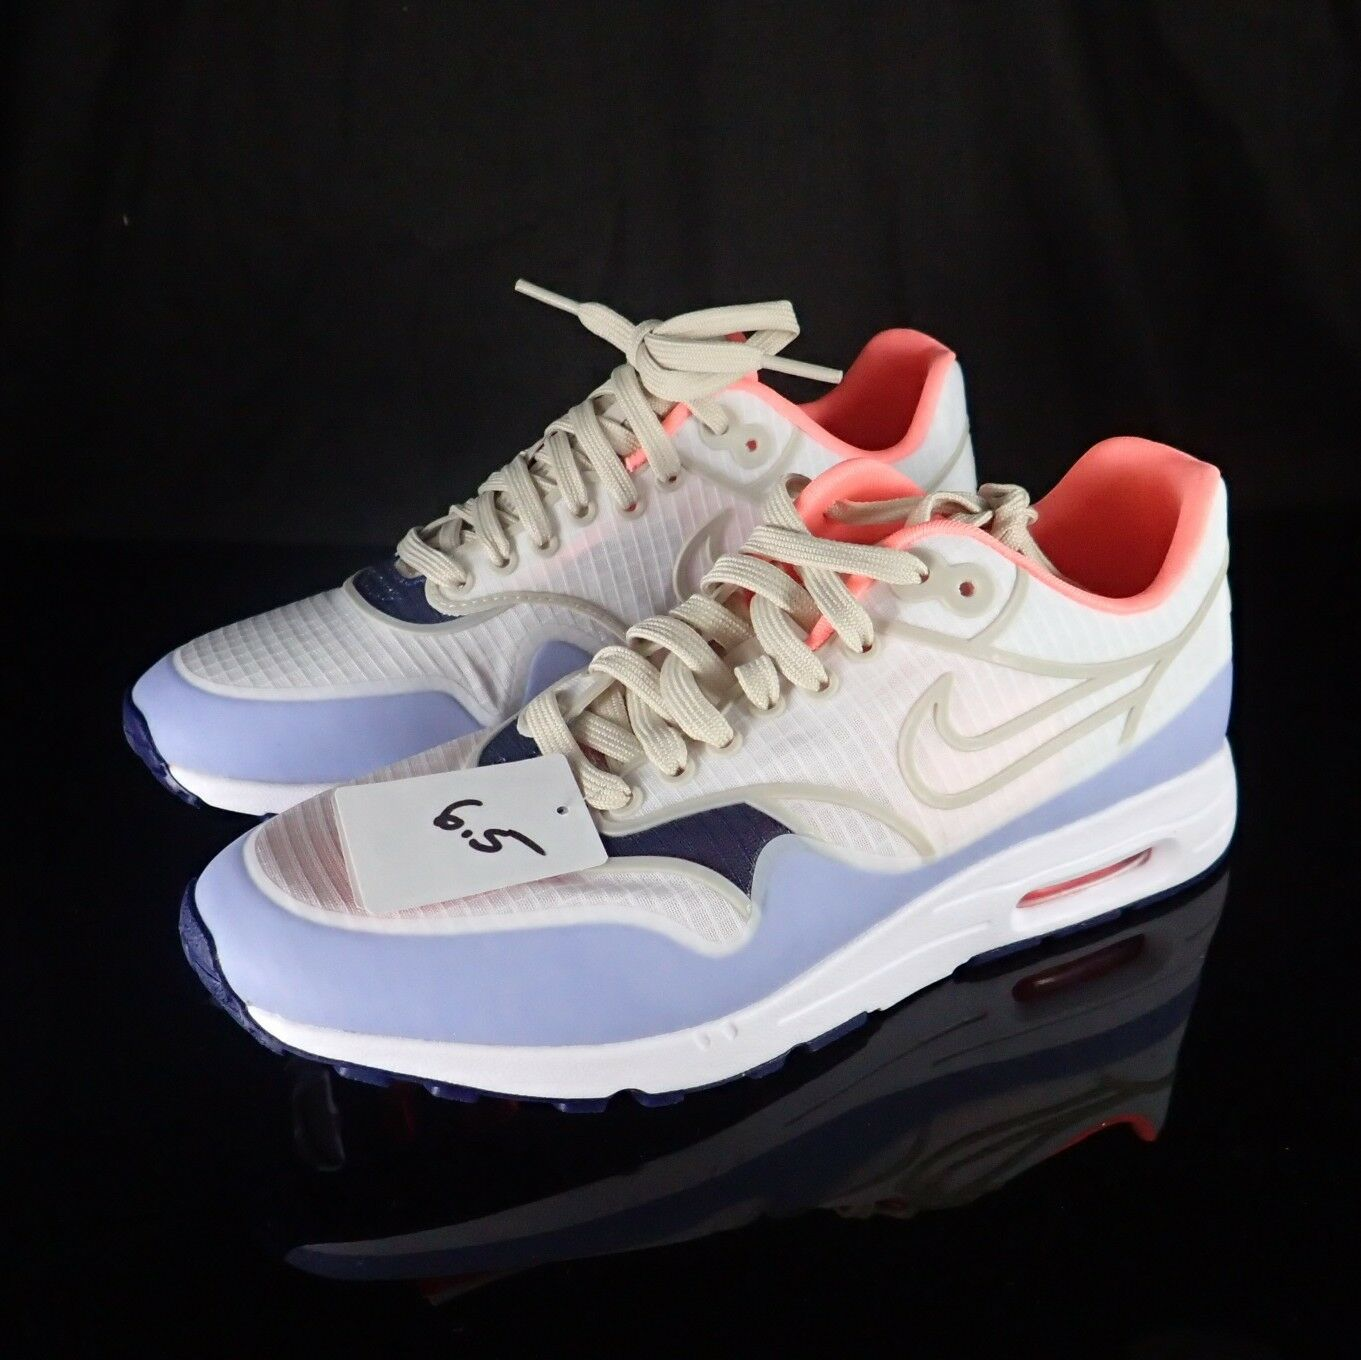 Nike Air Max 1 Ultra Sneakers 6.5 - NWT